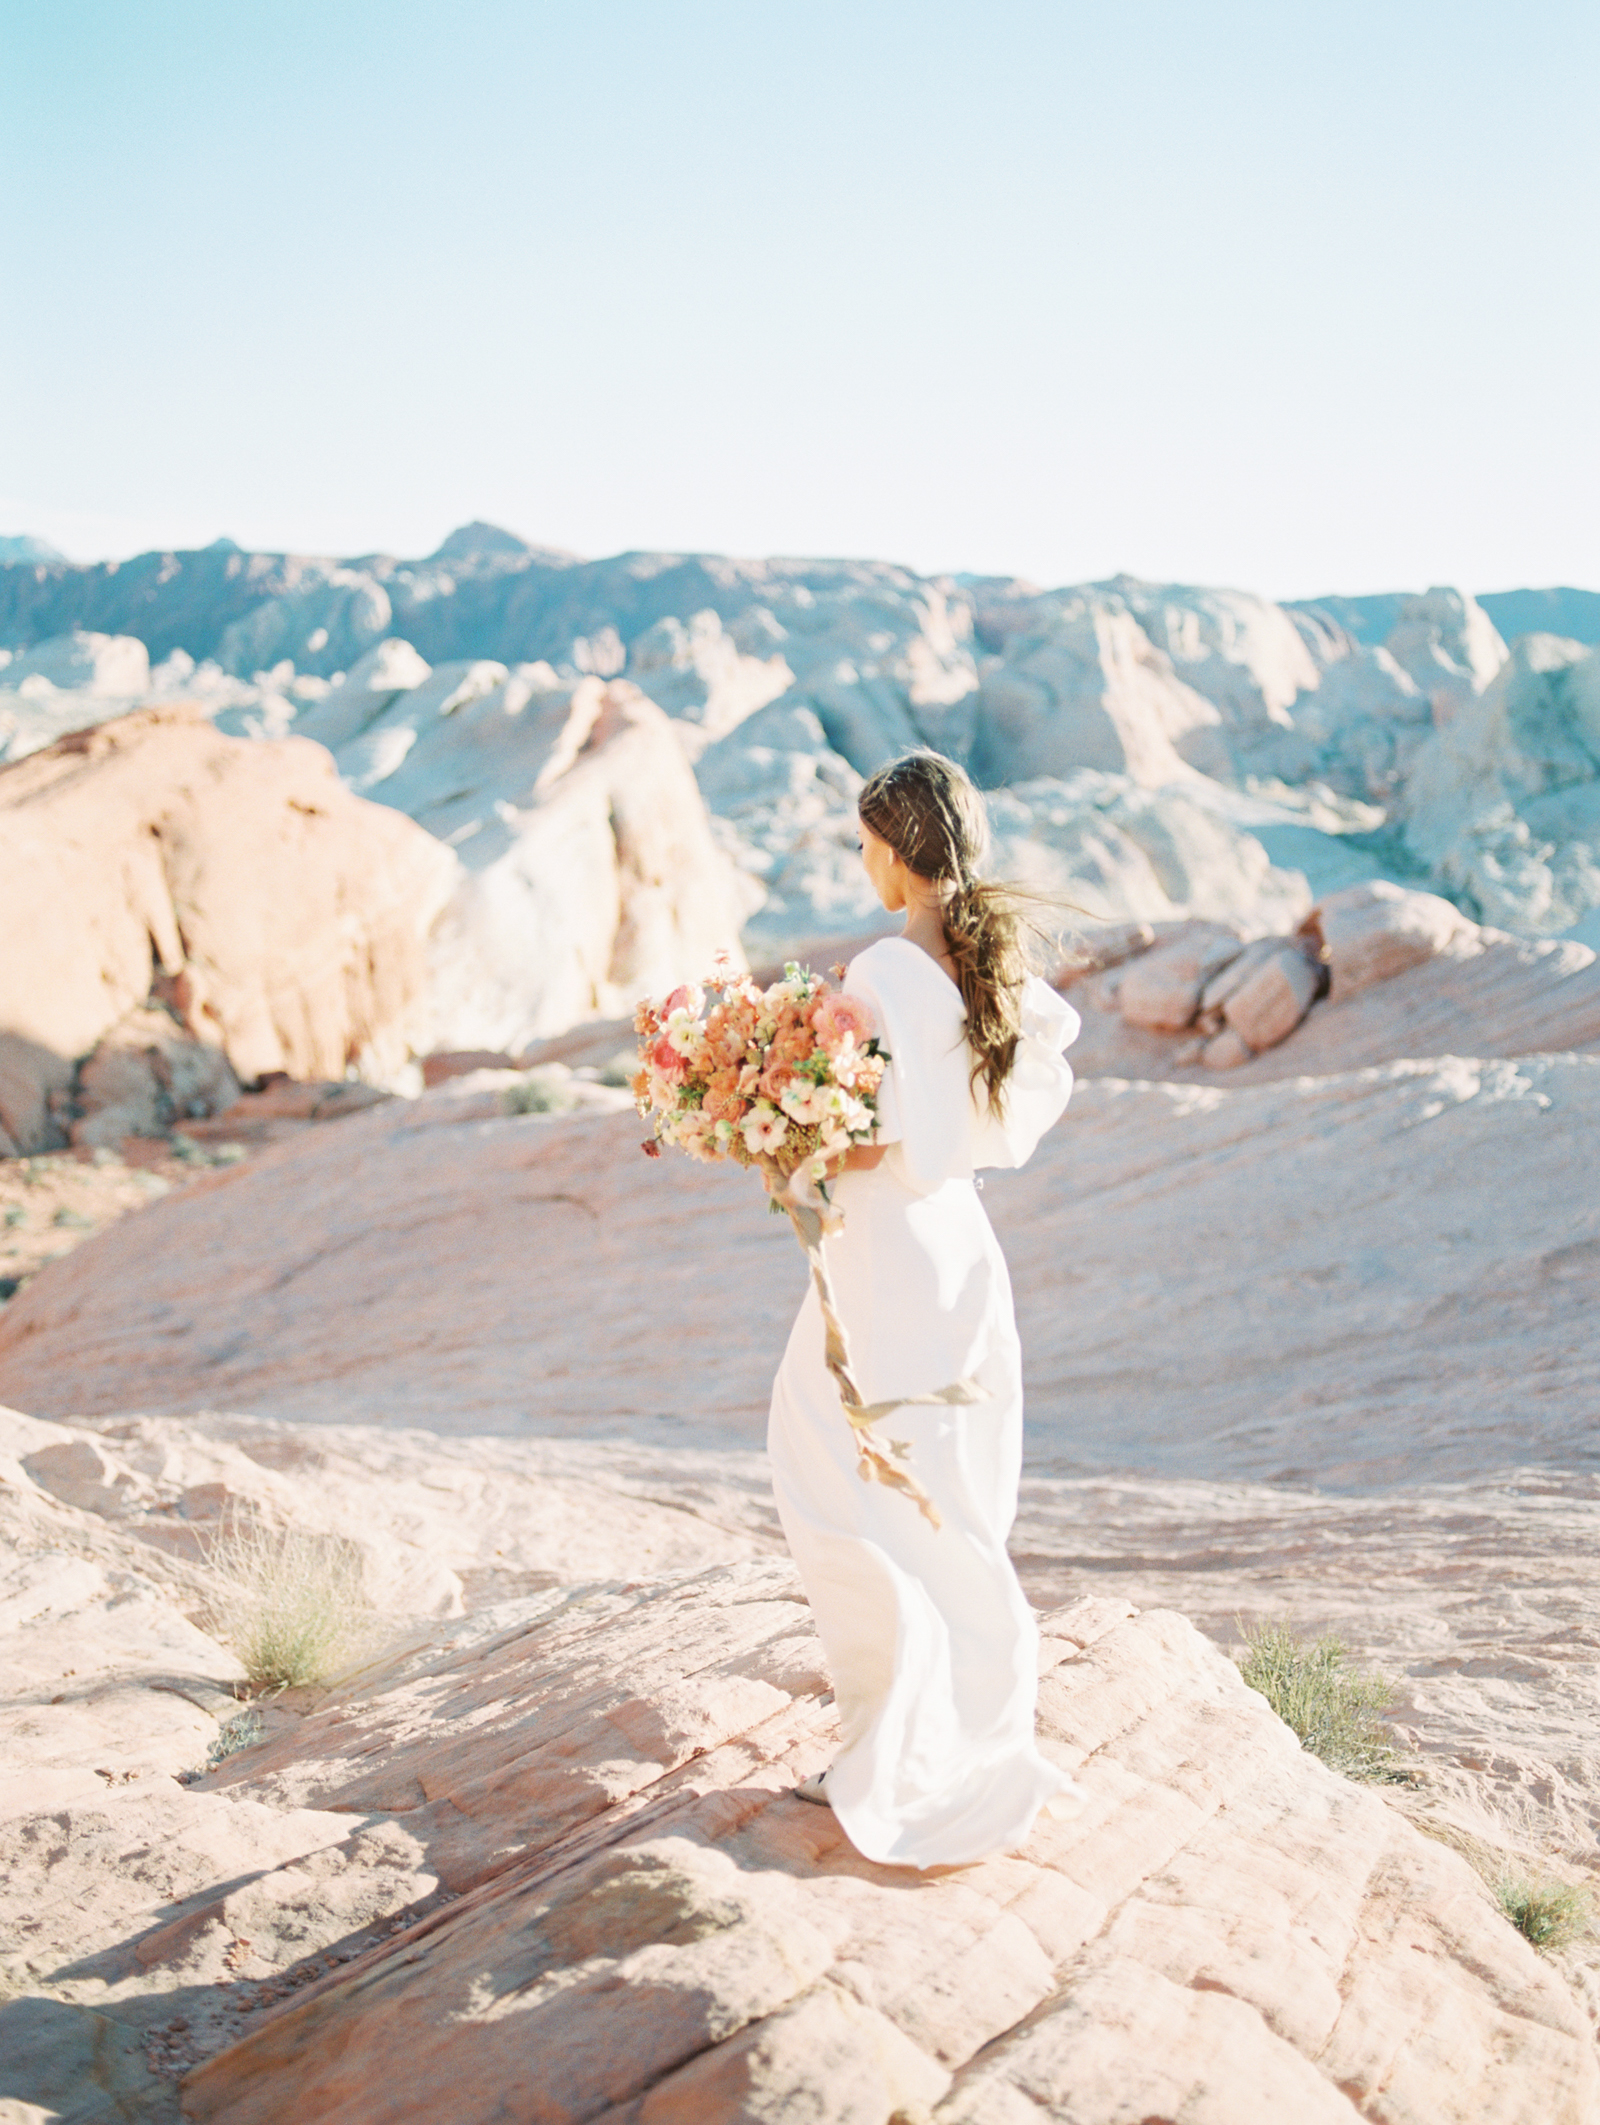 AKP_Desert_Wedding_Bridal_Shoot_Film_Fine_Art_Wedding_Photographer_Los_Angeles-10.jpg